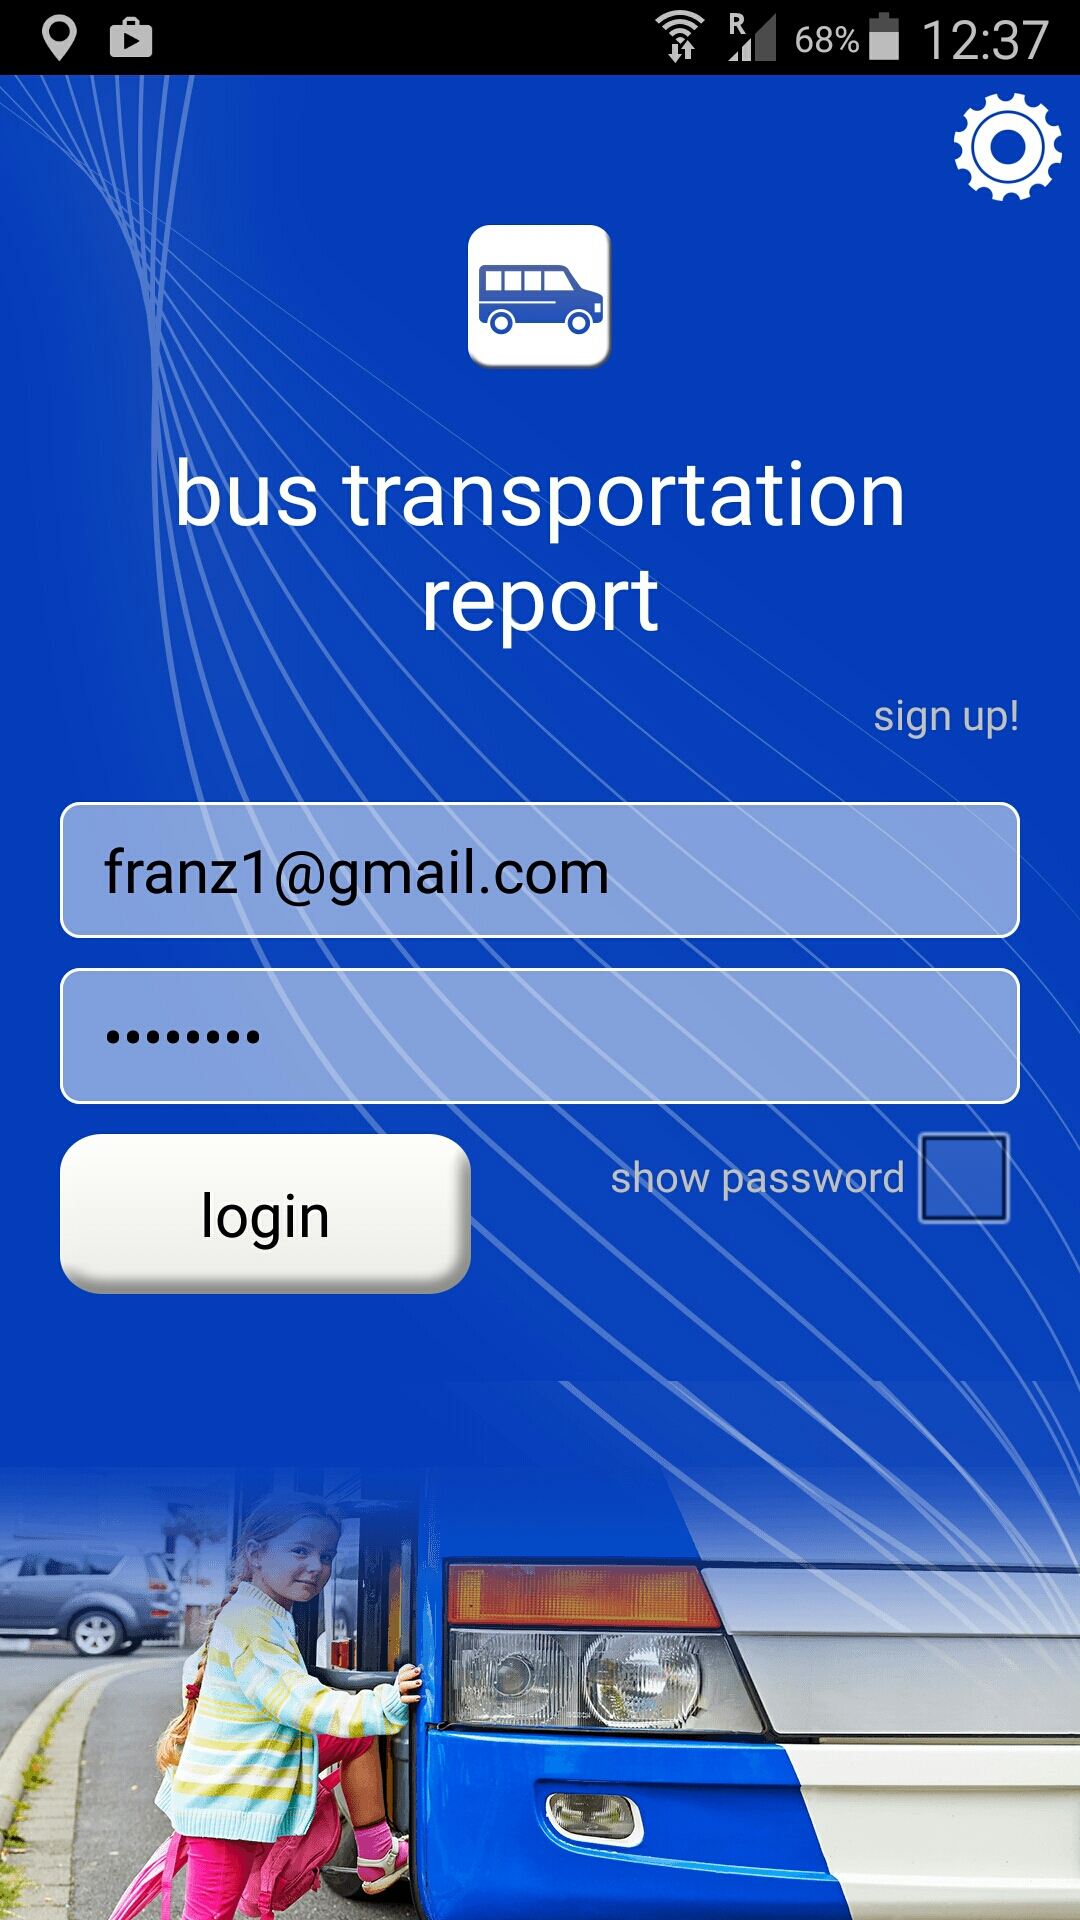 ginstr_app_busTransportationReport_EN_1